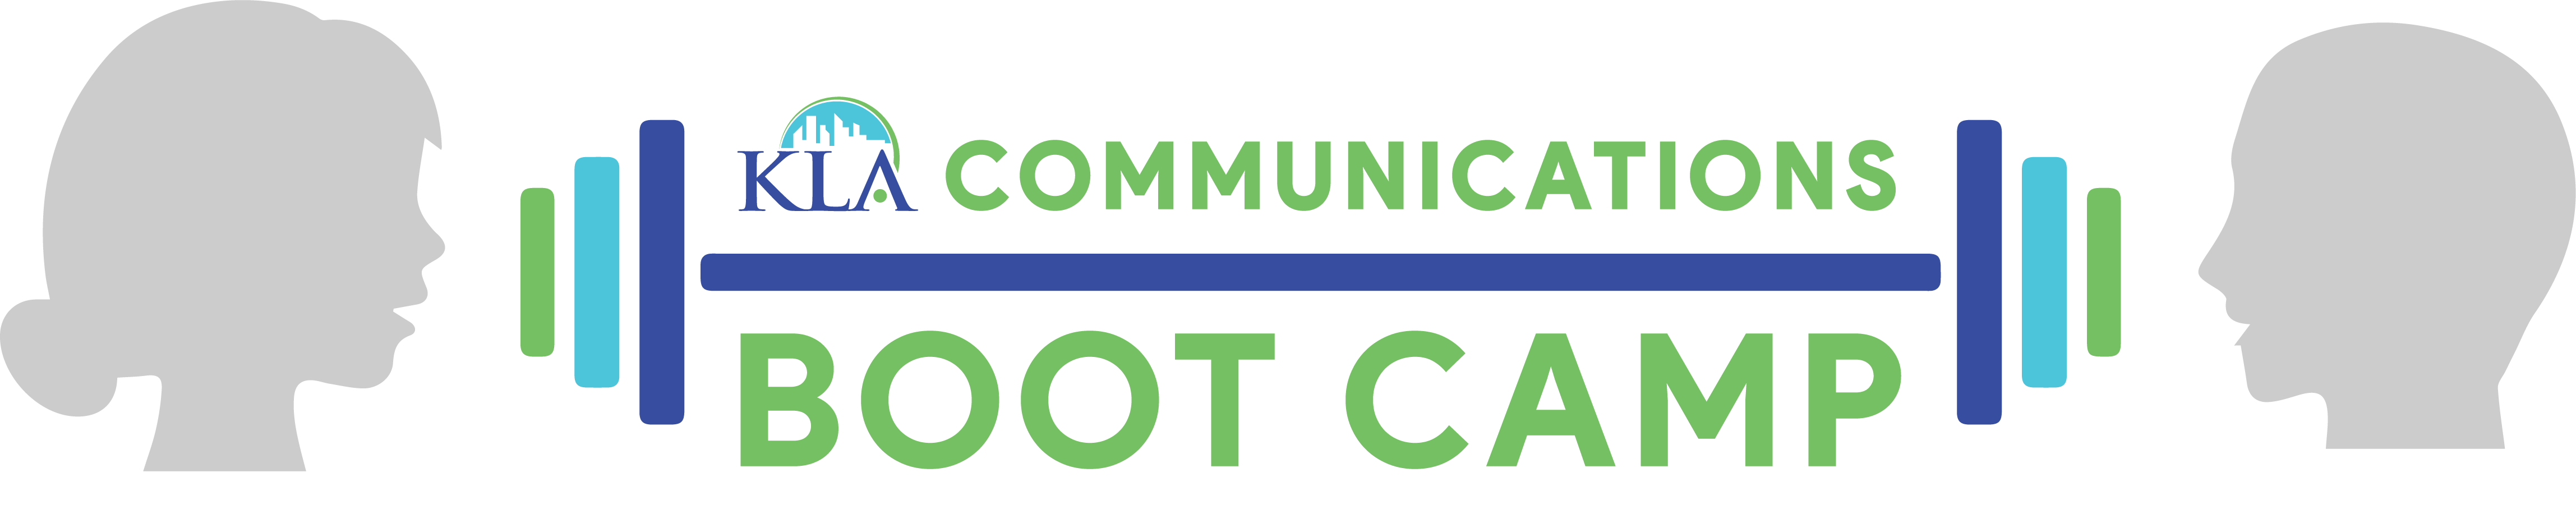 Communications Boot Camp